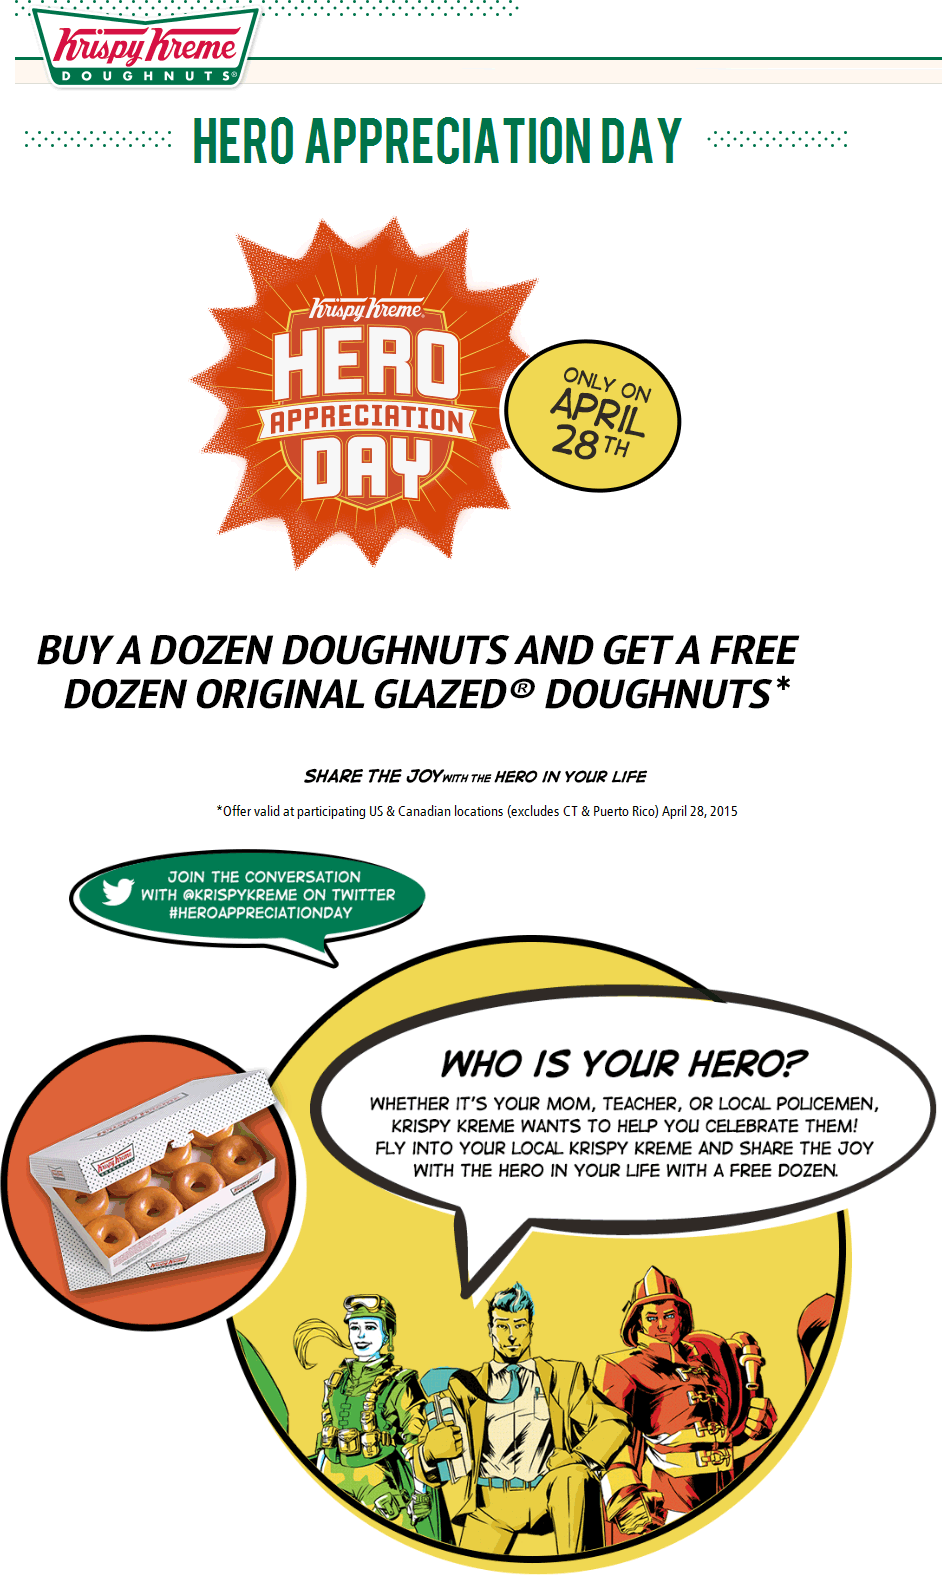 Krispy Kreme Coupon June 2017 Second dozen doughnuts free the 28th at Krispy Kreme